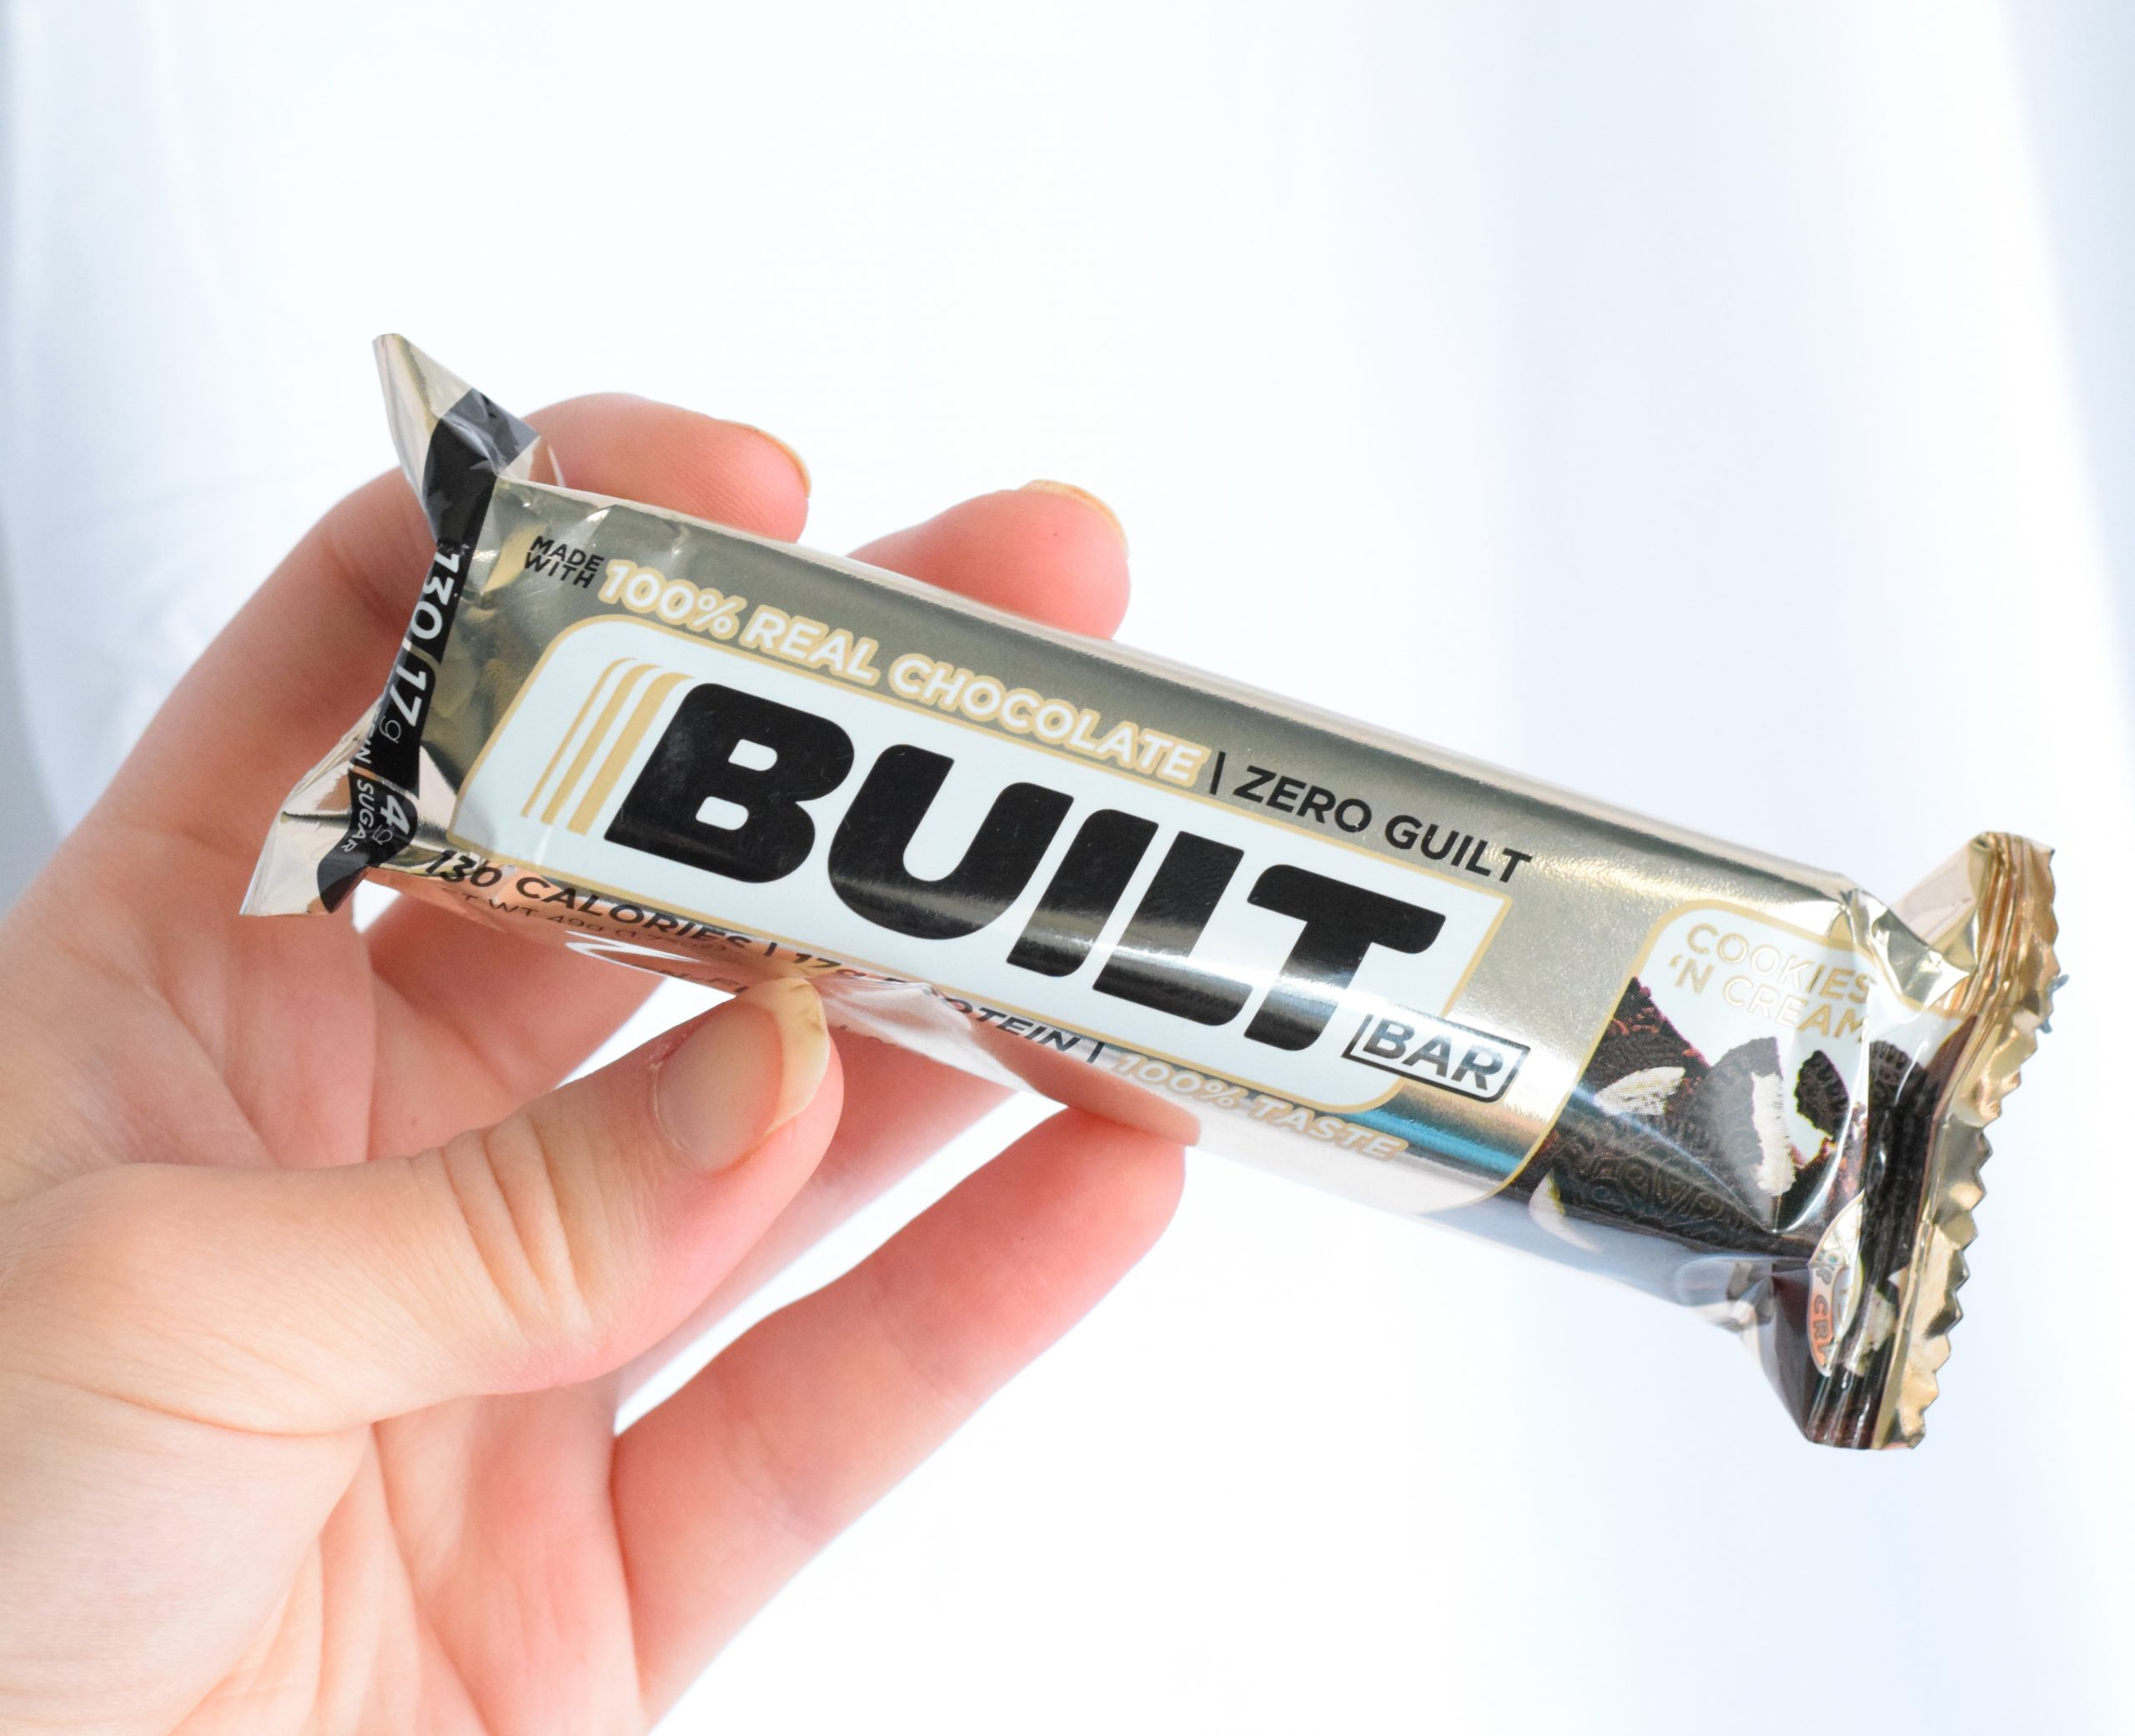 cookies n cream built bar review